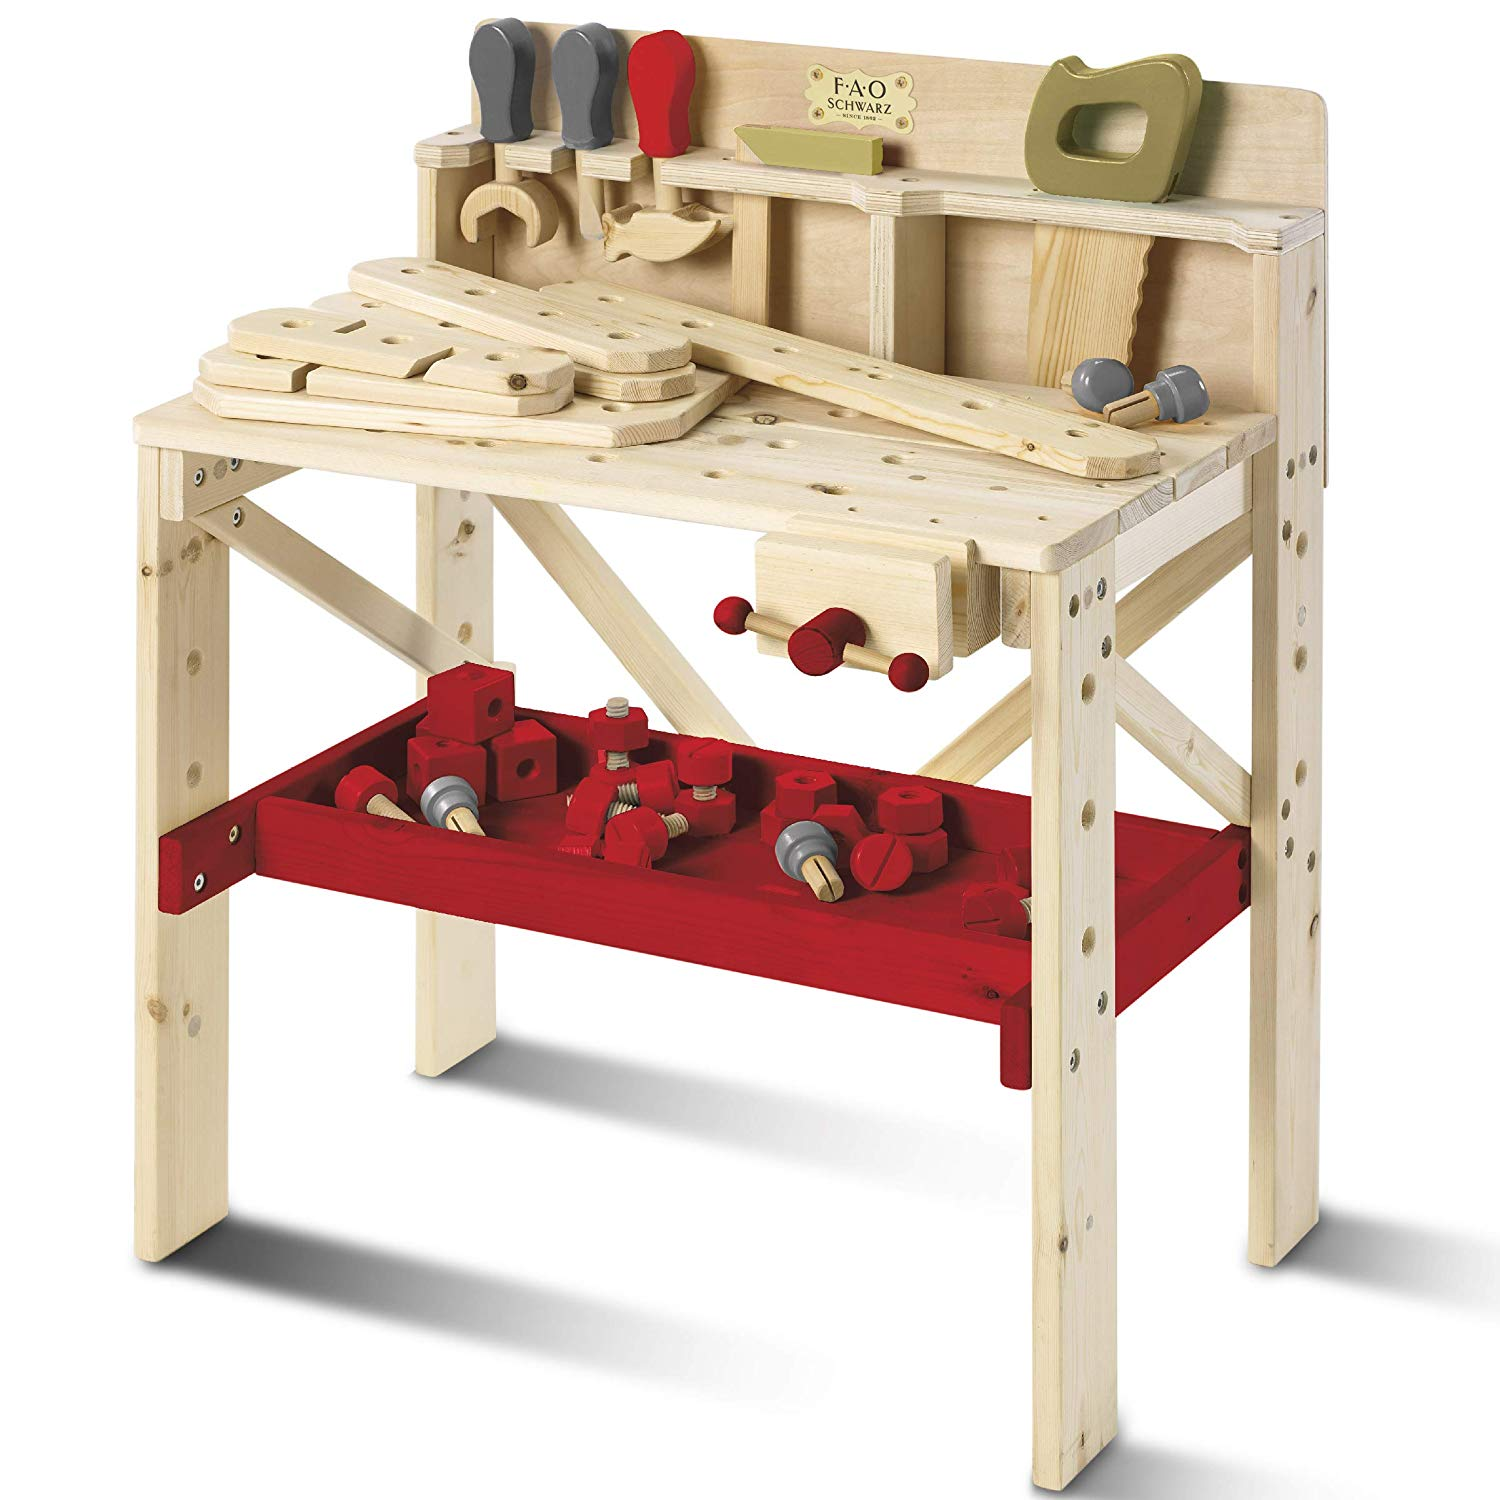 Fao Schwarz Solid Wood Toy Workbench With Tool Set (64 Piece Set).